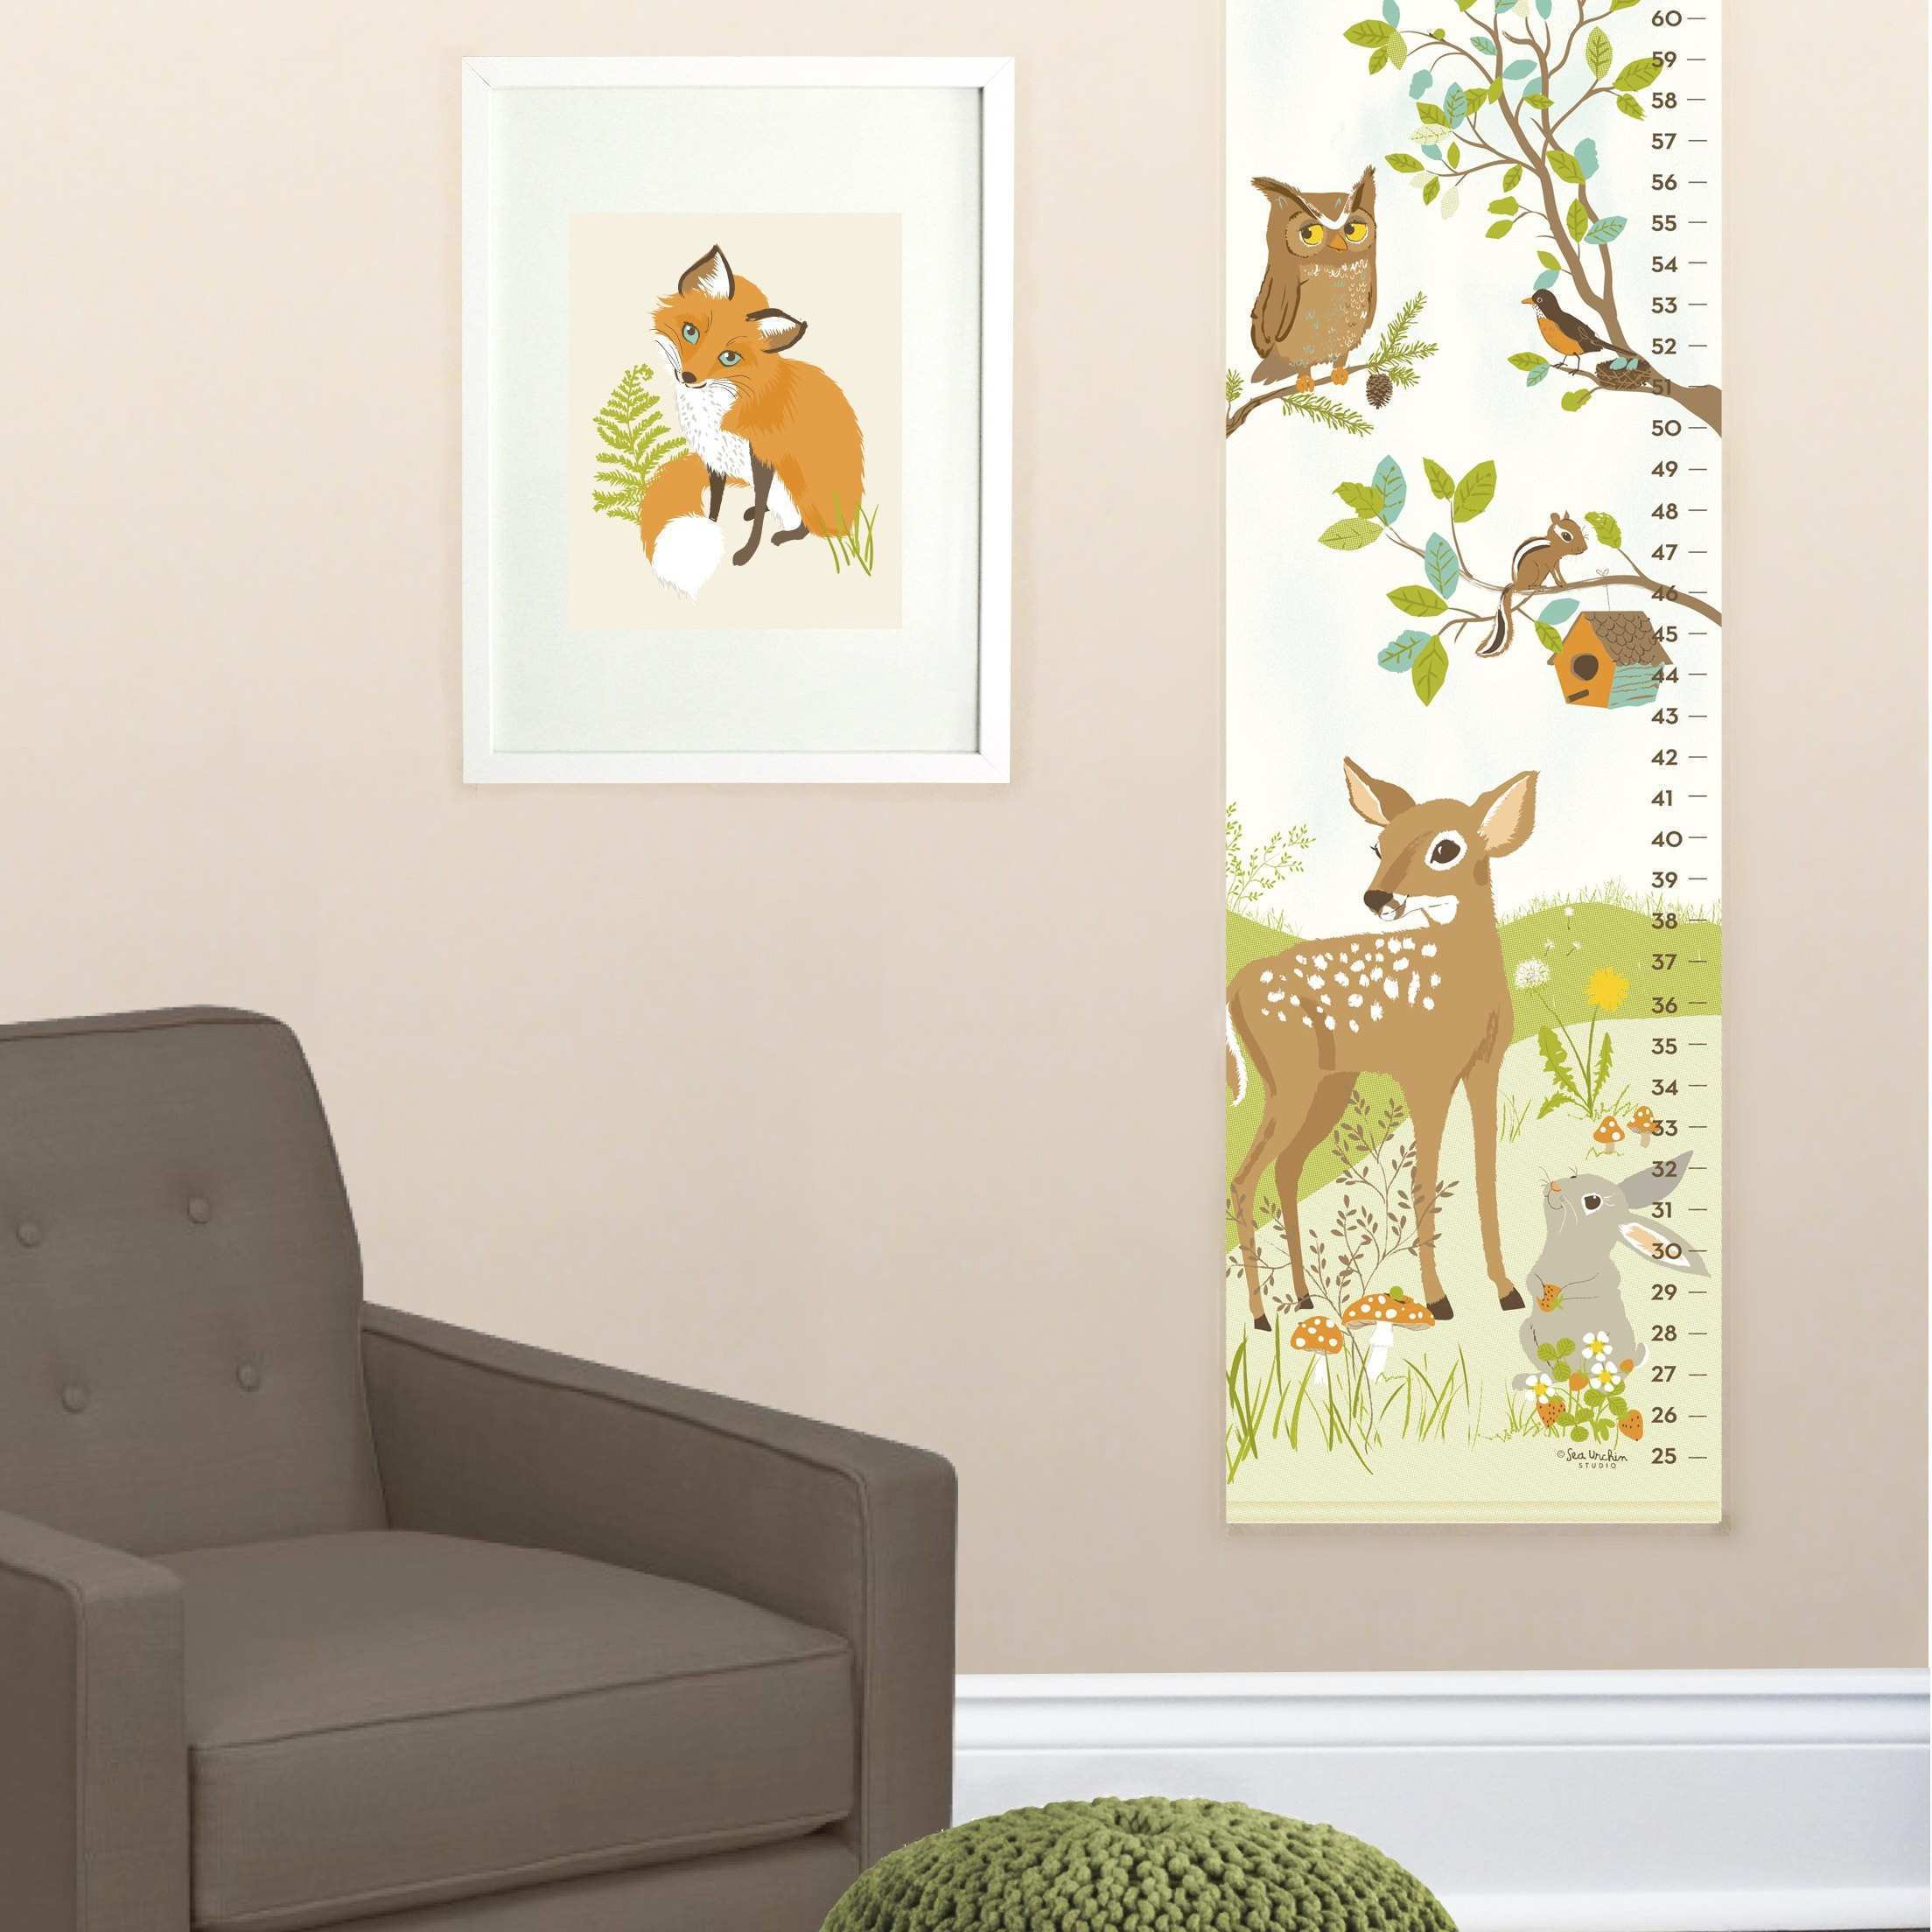 30 Unique Animal Print Wall Decor